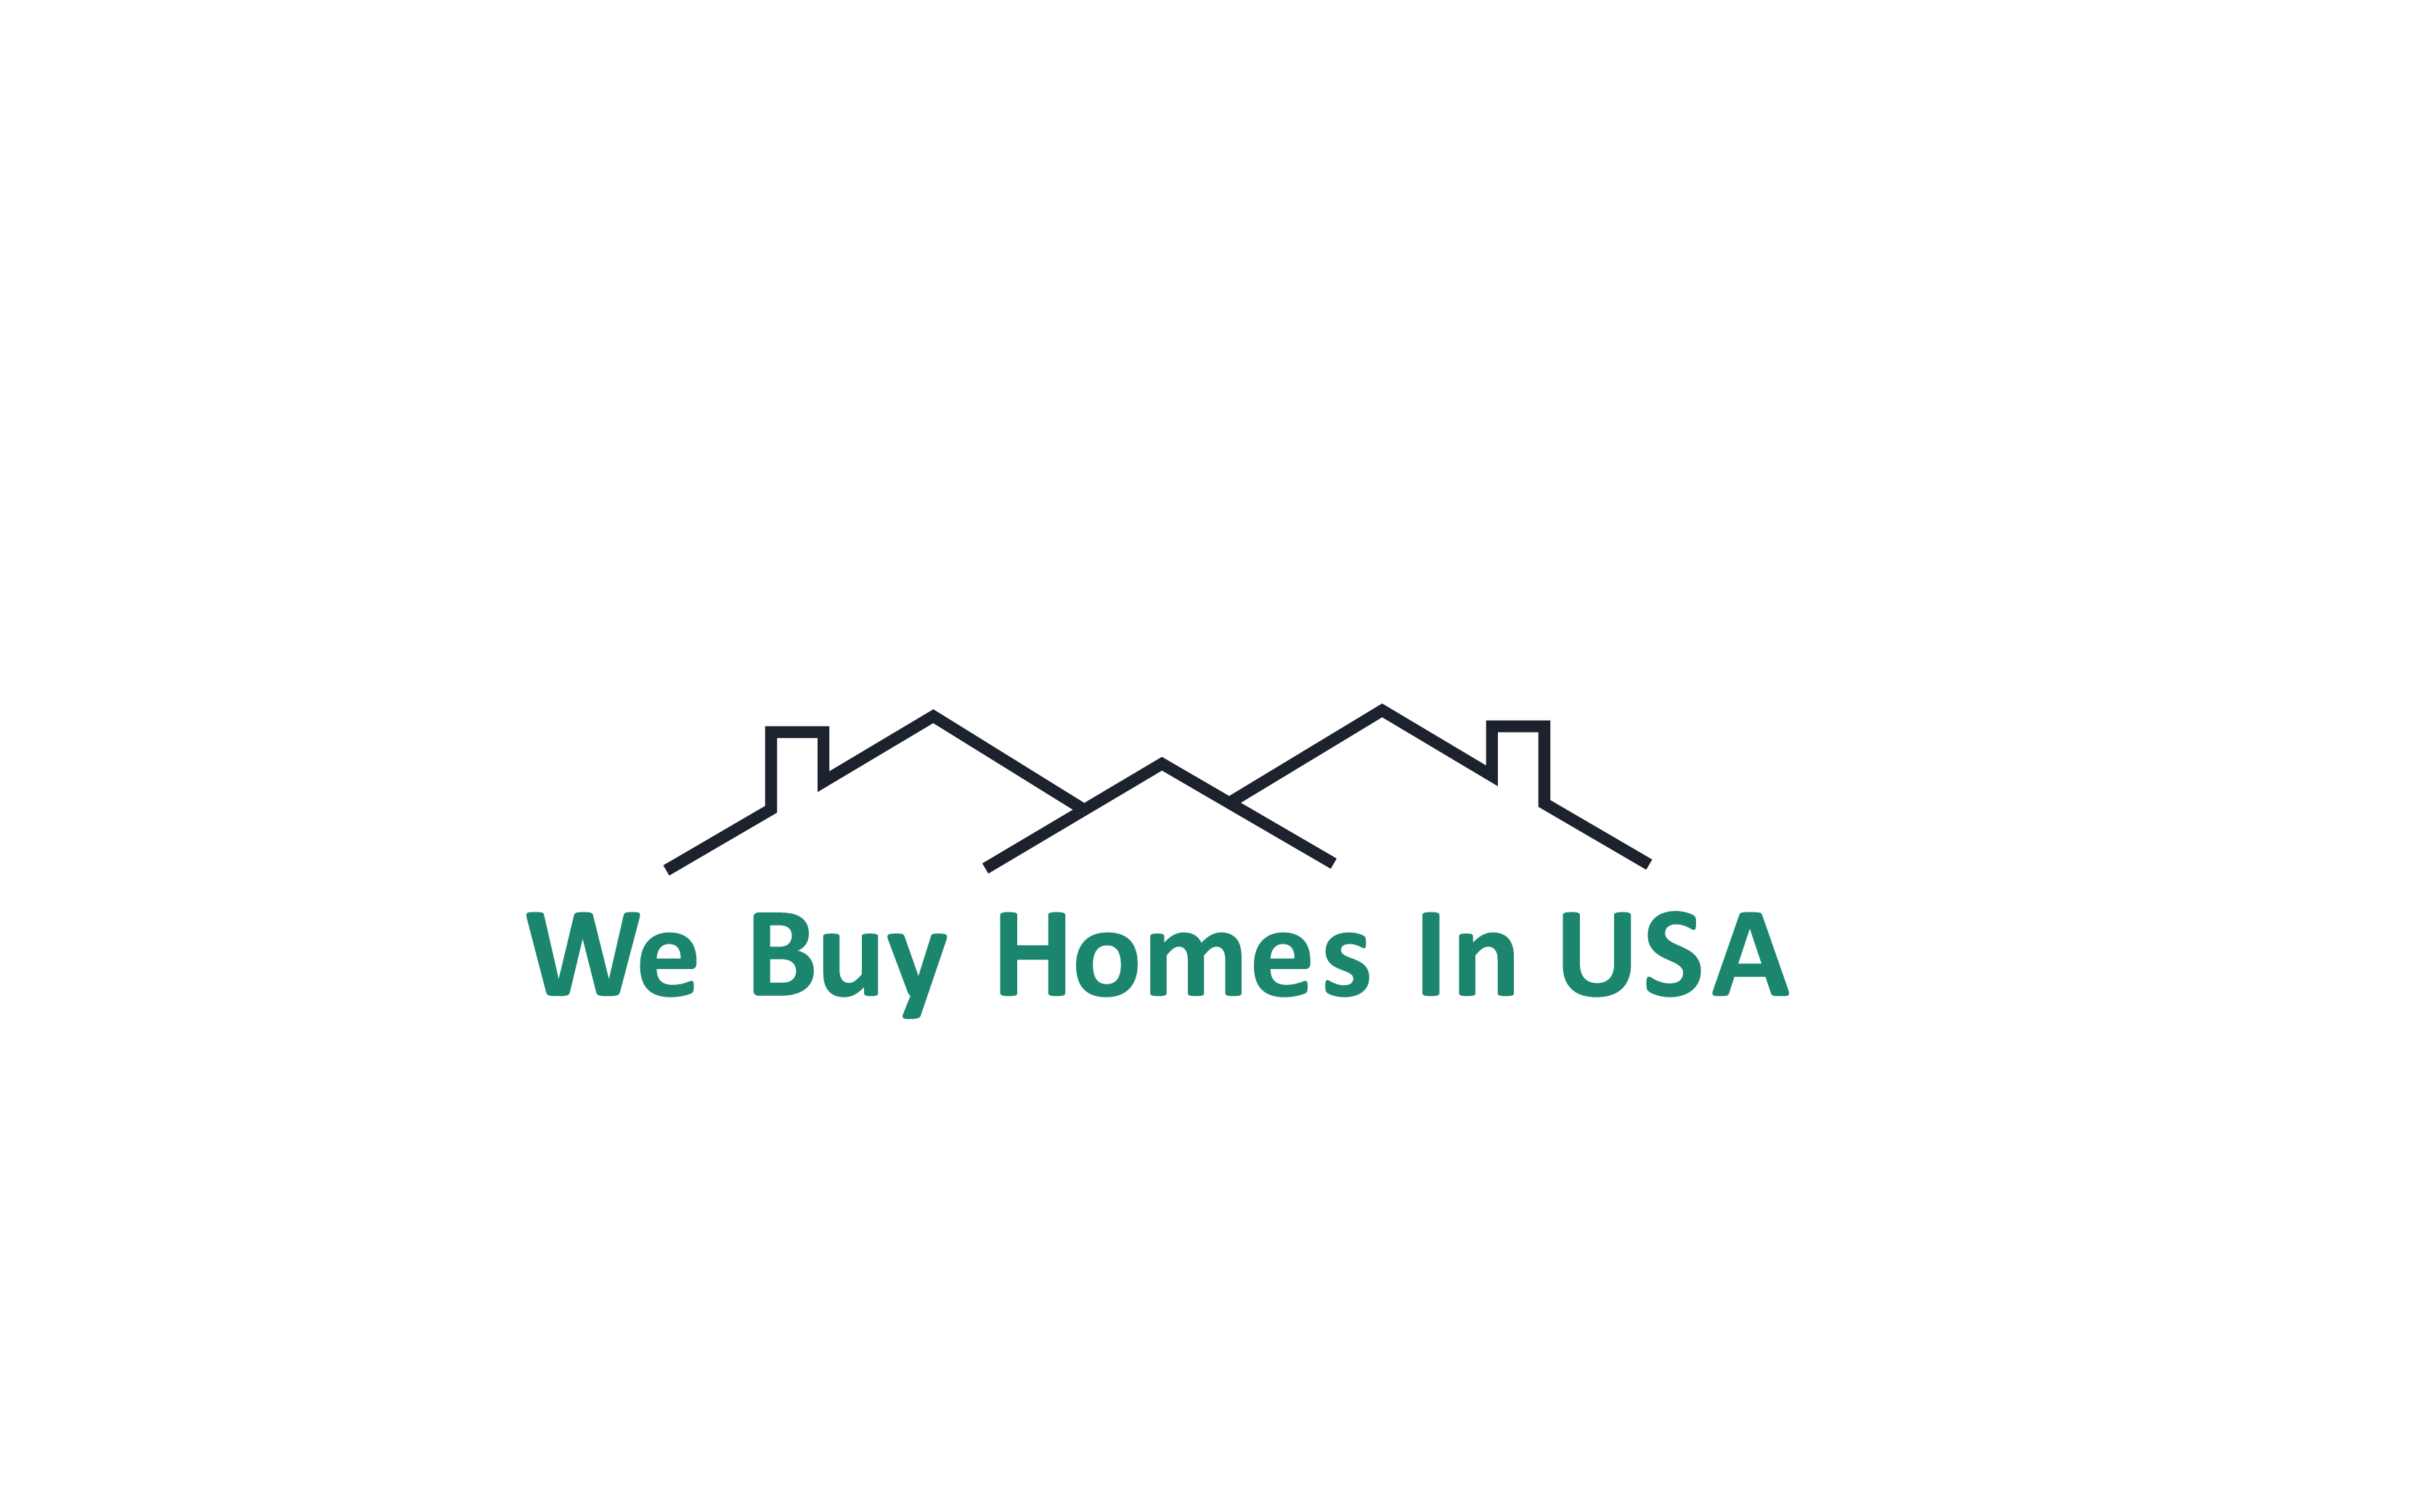 we buy homes in usa logo acquisition real estate